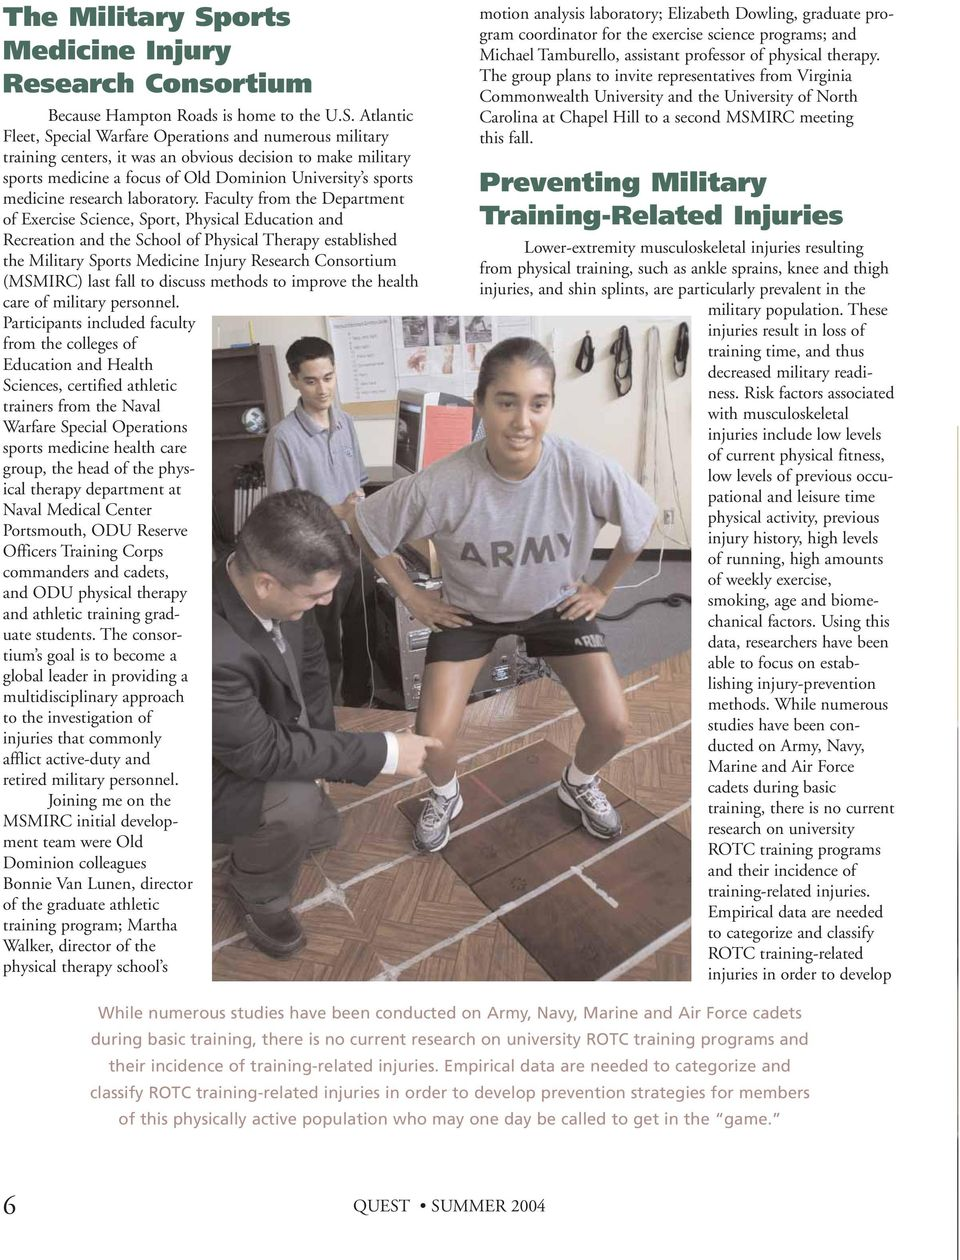 Atlantic Fleet, Special Warfare Operations and numerous military training centers, it was an obvious decision to make military sports medicine a focus of Old Dominion University s sports medicine